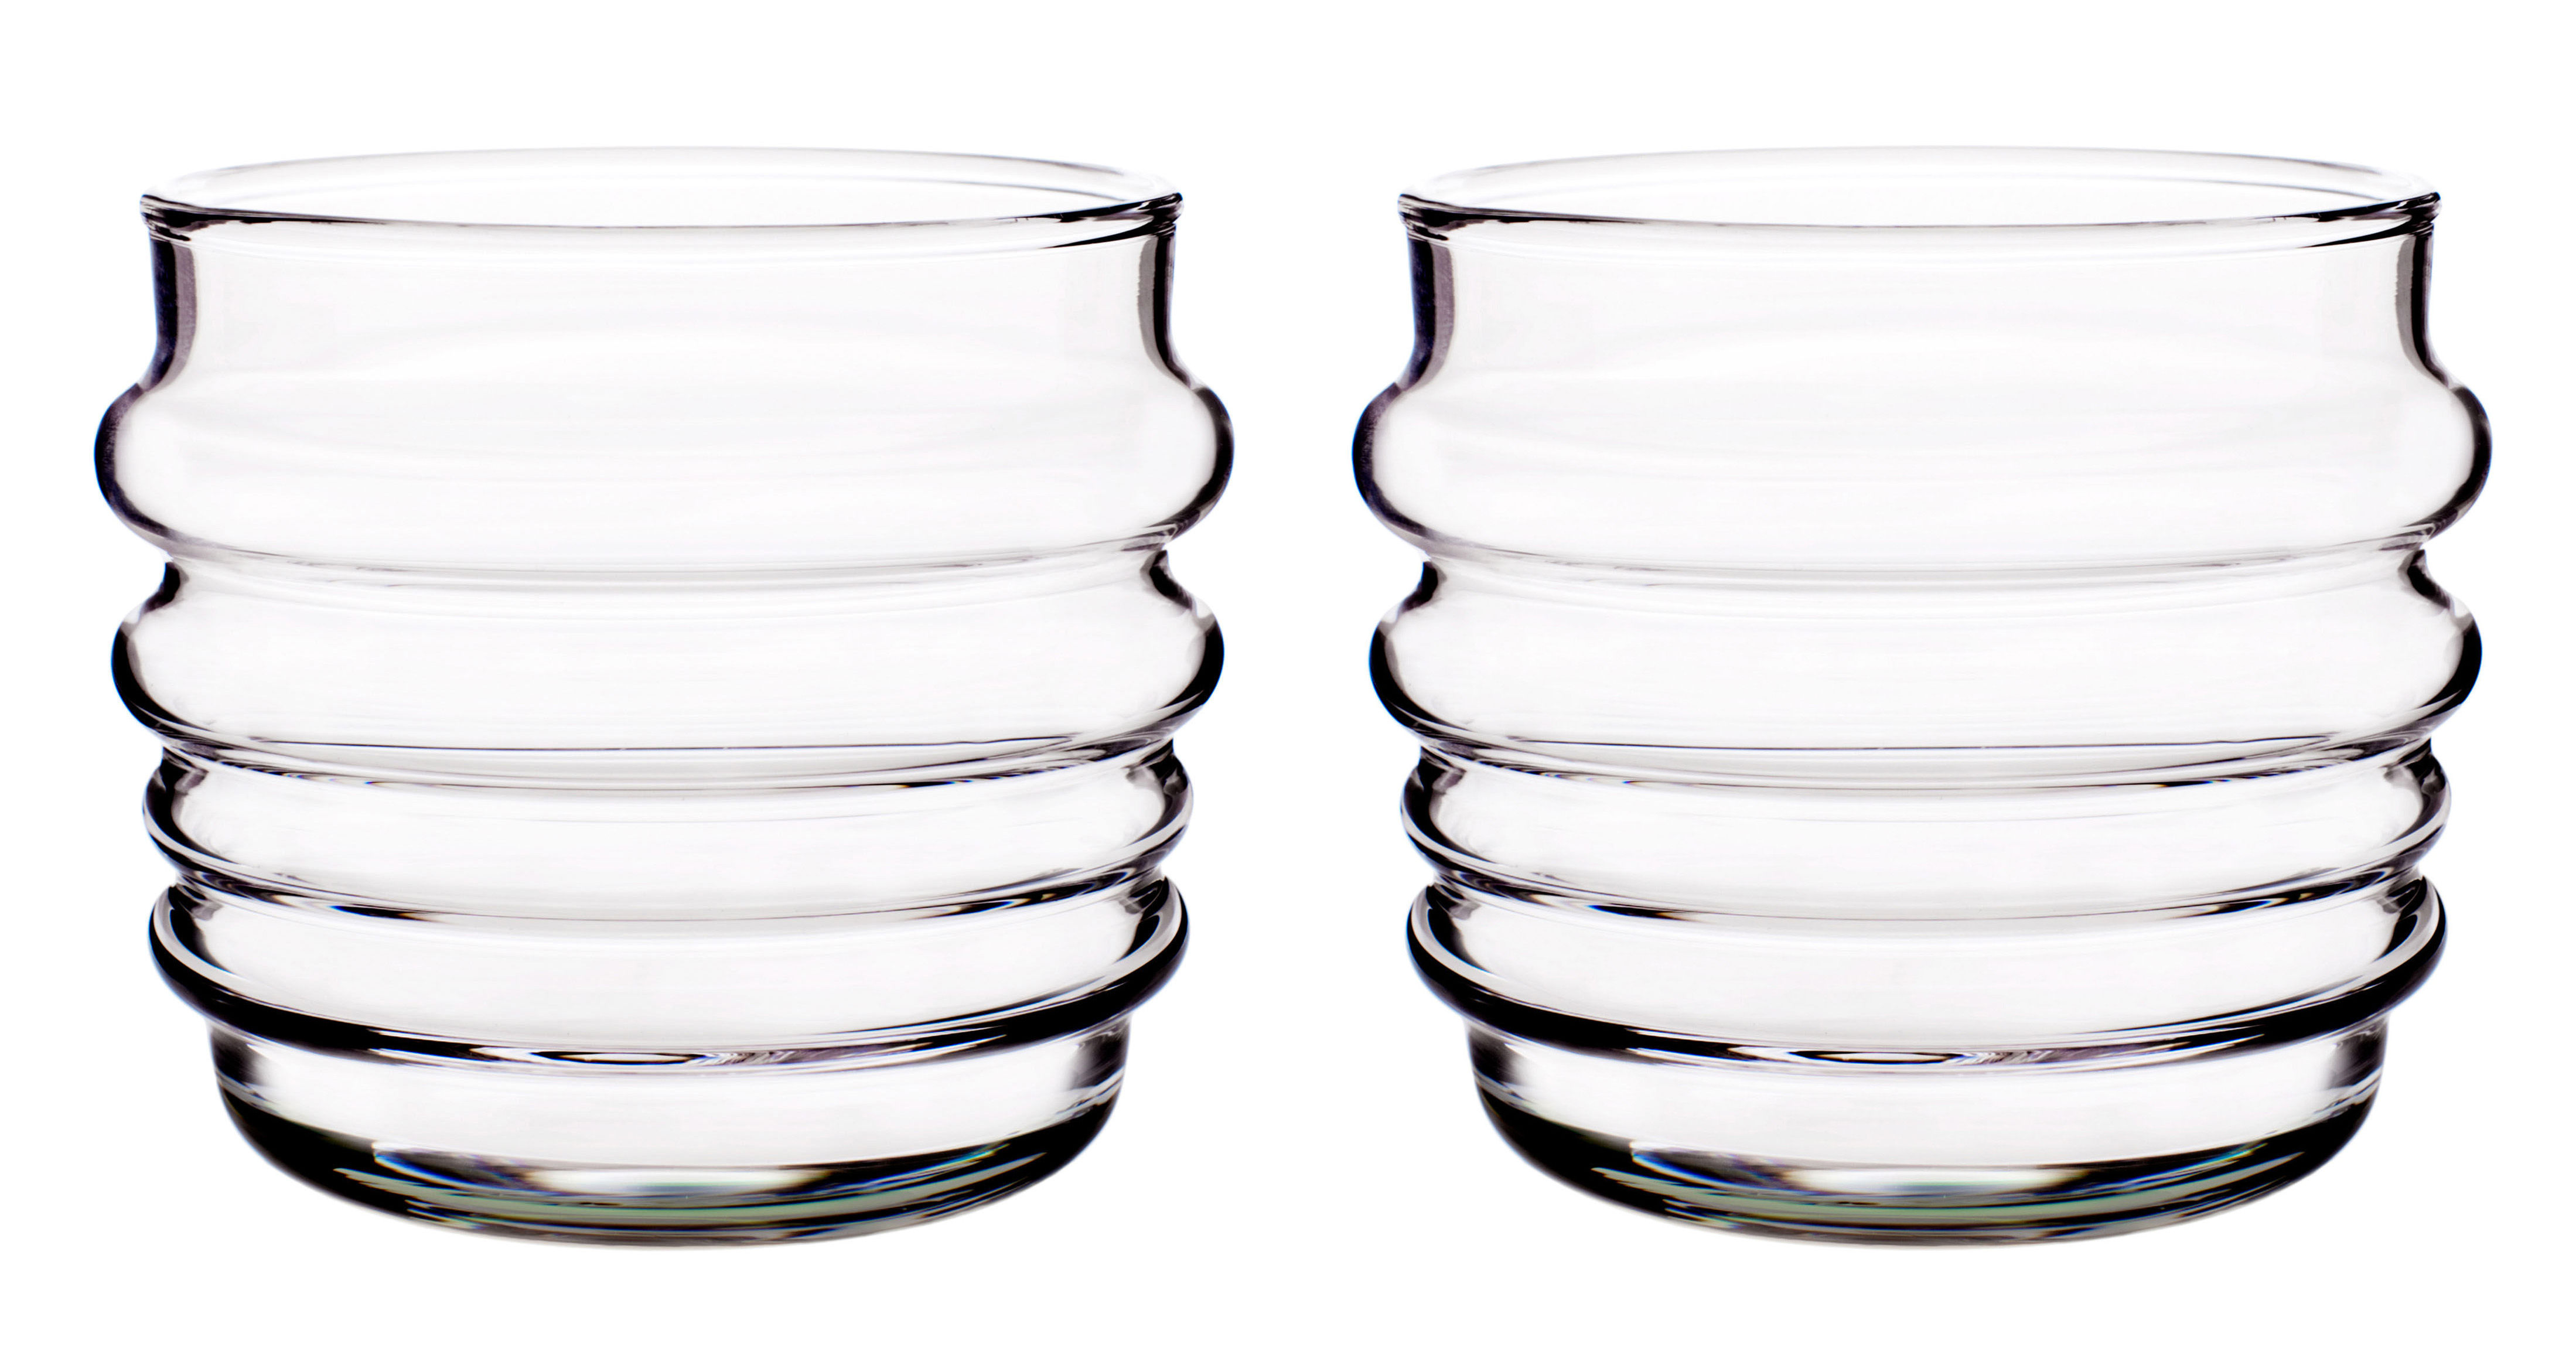 Tableware - Wine Glasses & Glassware - Sukat Makkaralla Glass - Set of 2 by Marimekko - Sukat Makkaralla - Clear - Mouth blown glass